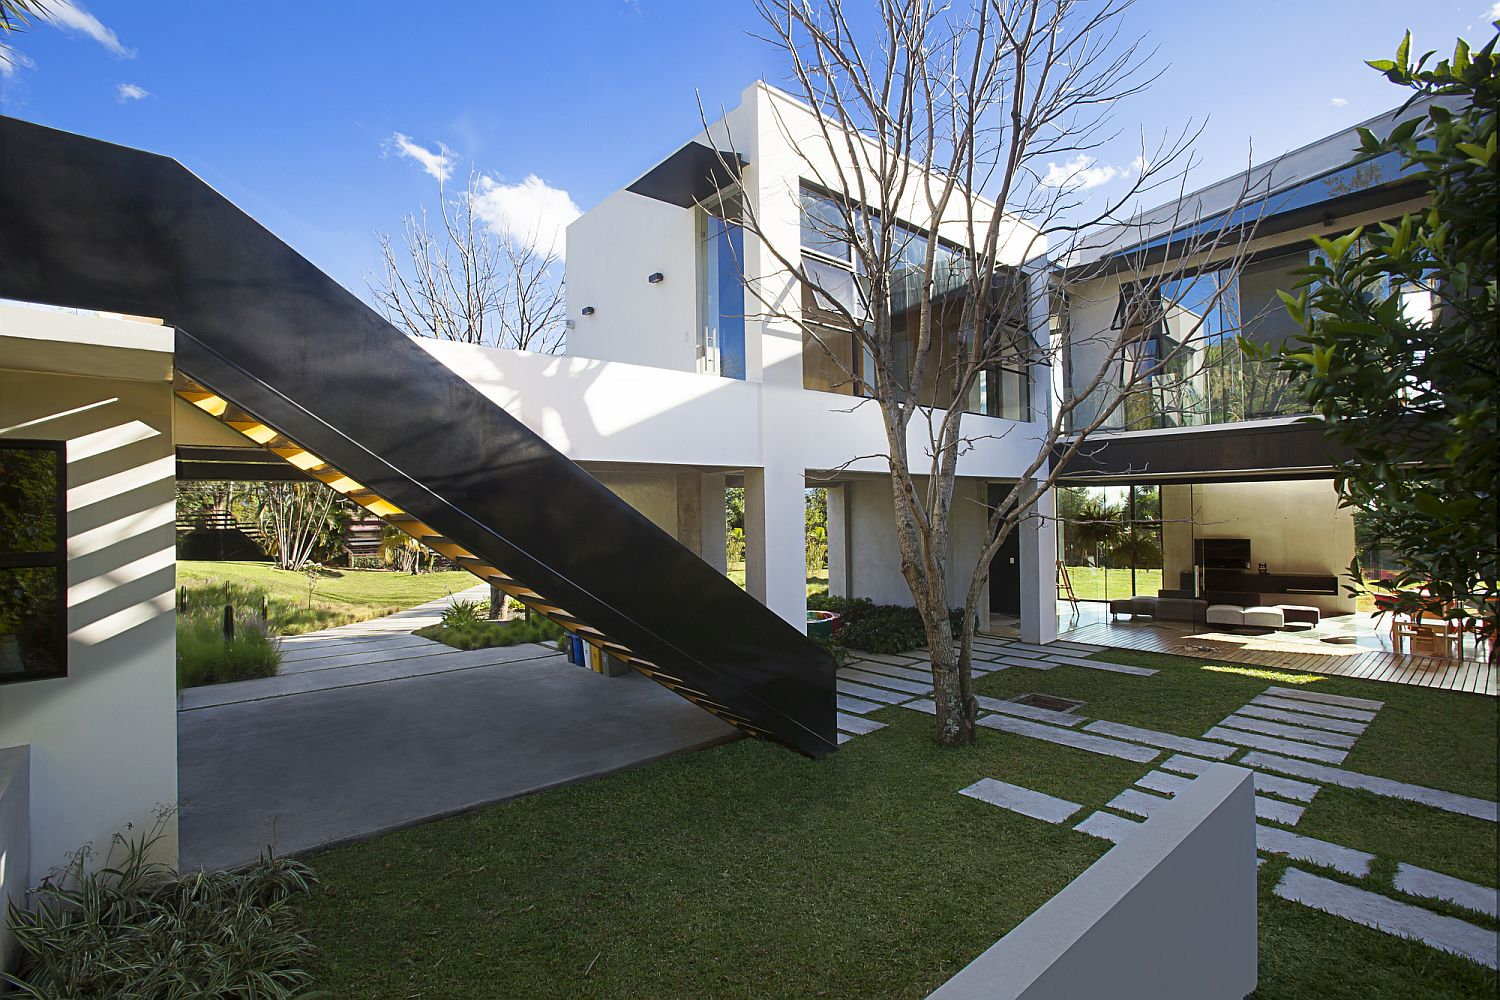 Series of courtyards, gardens and walkways around the modern home